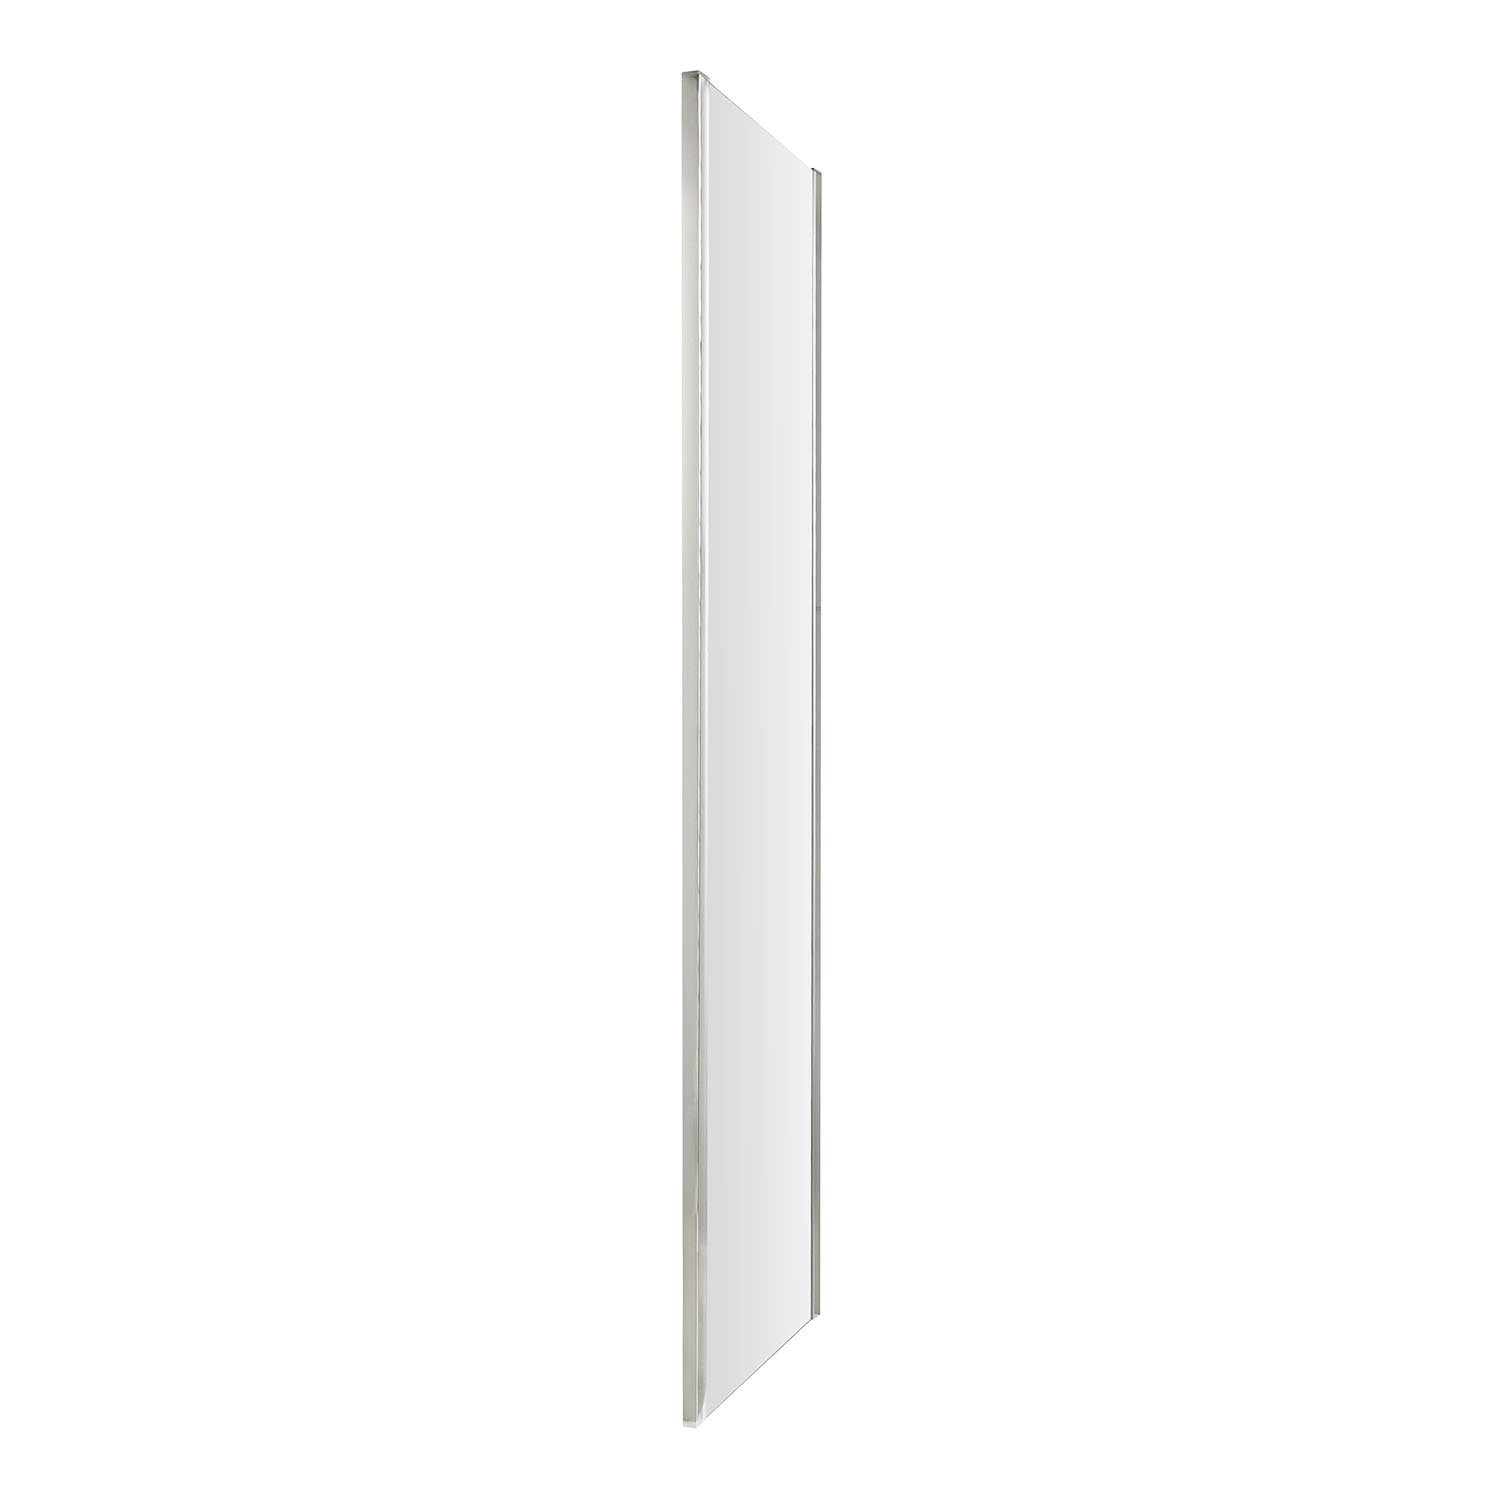 1900mm x 760mm Hudson Reed MH76-E8 Apex 760mm Modern Bathroom Hinged Shower Door with 8mm Toughened Safety Glass Clear